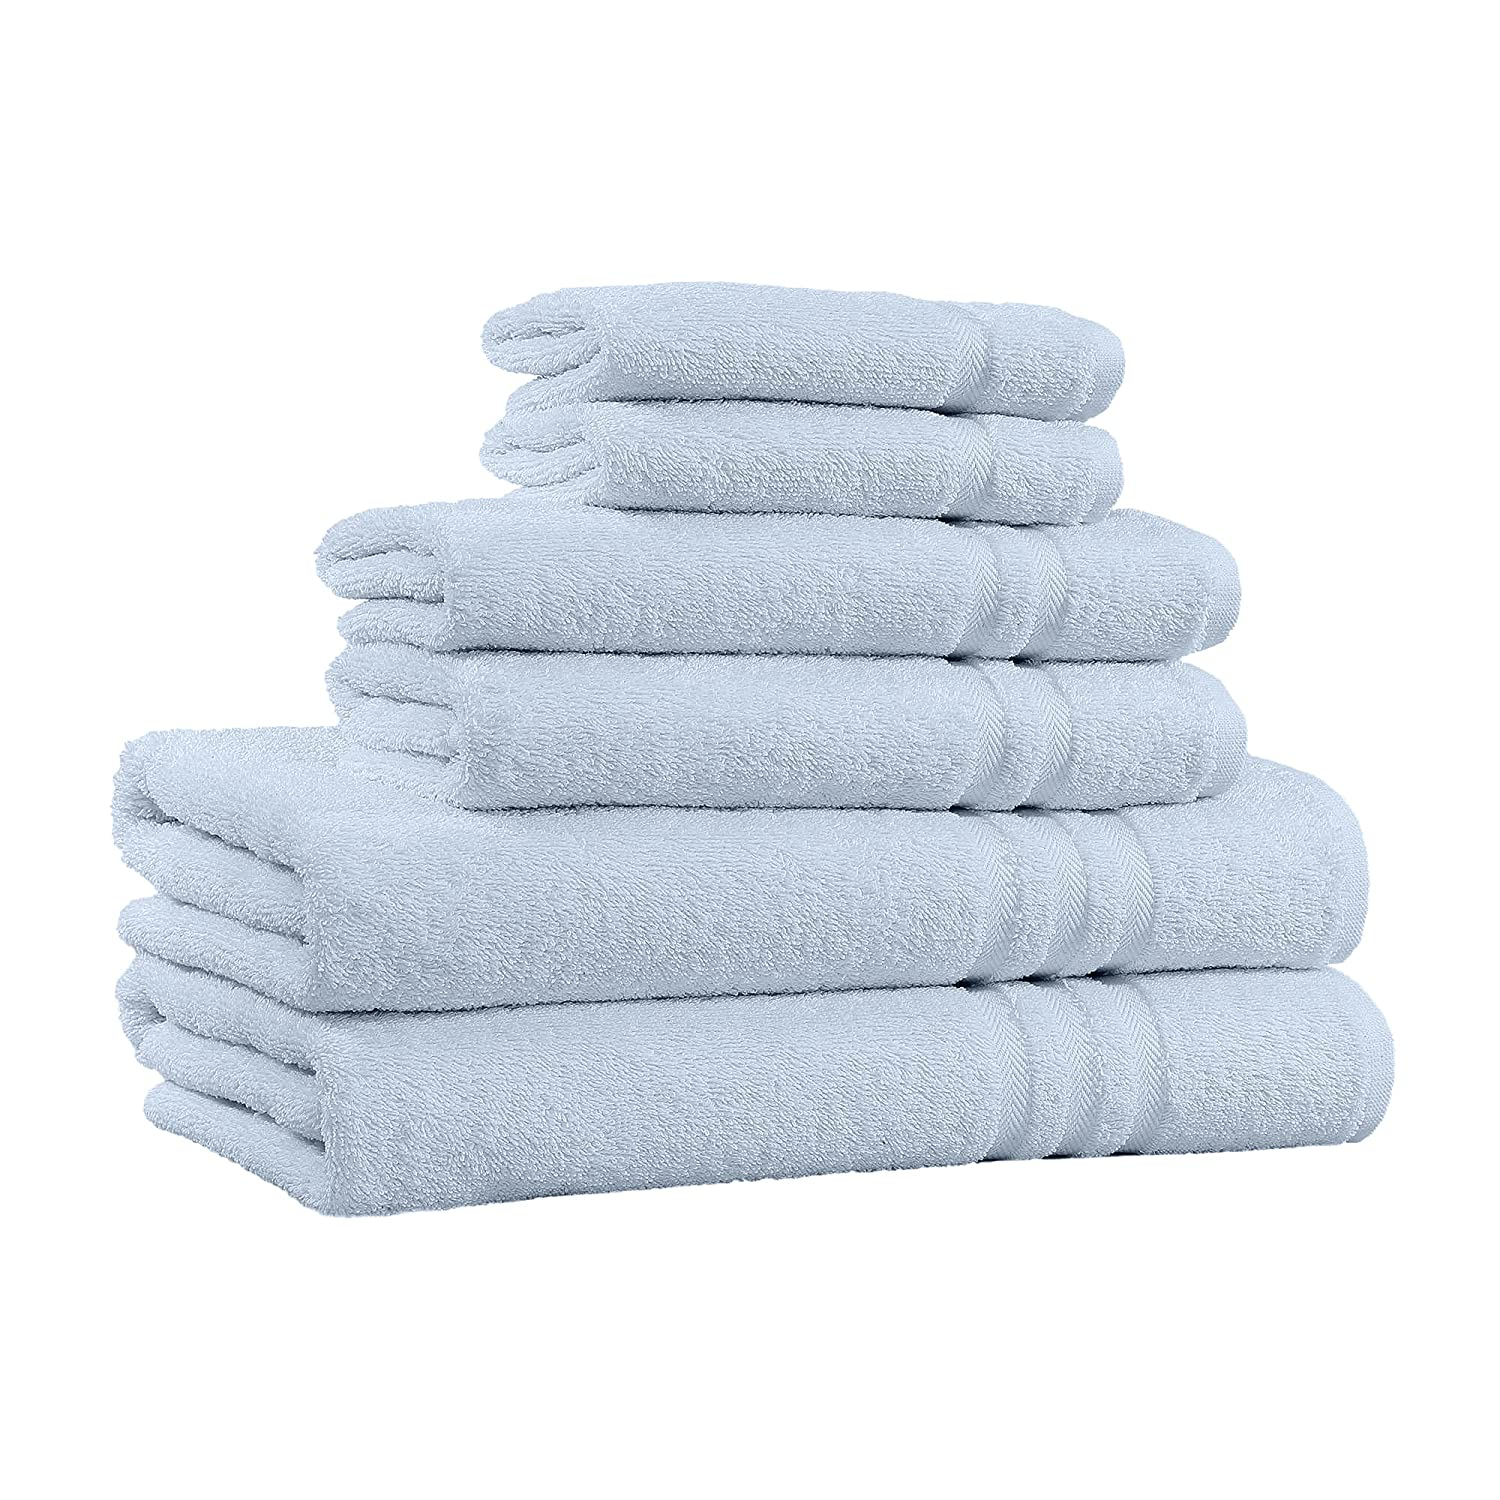 100% Cotton 6-Piece Towel Set - 2 Bath Towels, 2 Hand Towels, and 2 Washcloths - Super Soft Hotel Quality, High Absorbent Quick Dry Towel, and Fade-Resistant - 650 GSM - Made in India (White) Home Sweet Home Dreams Inc